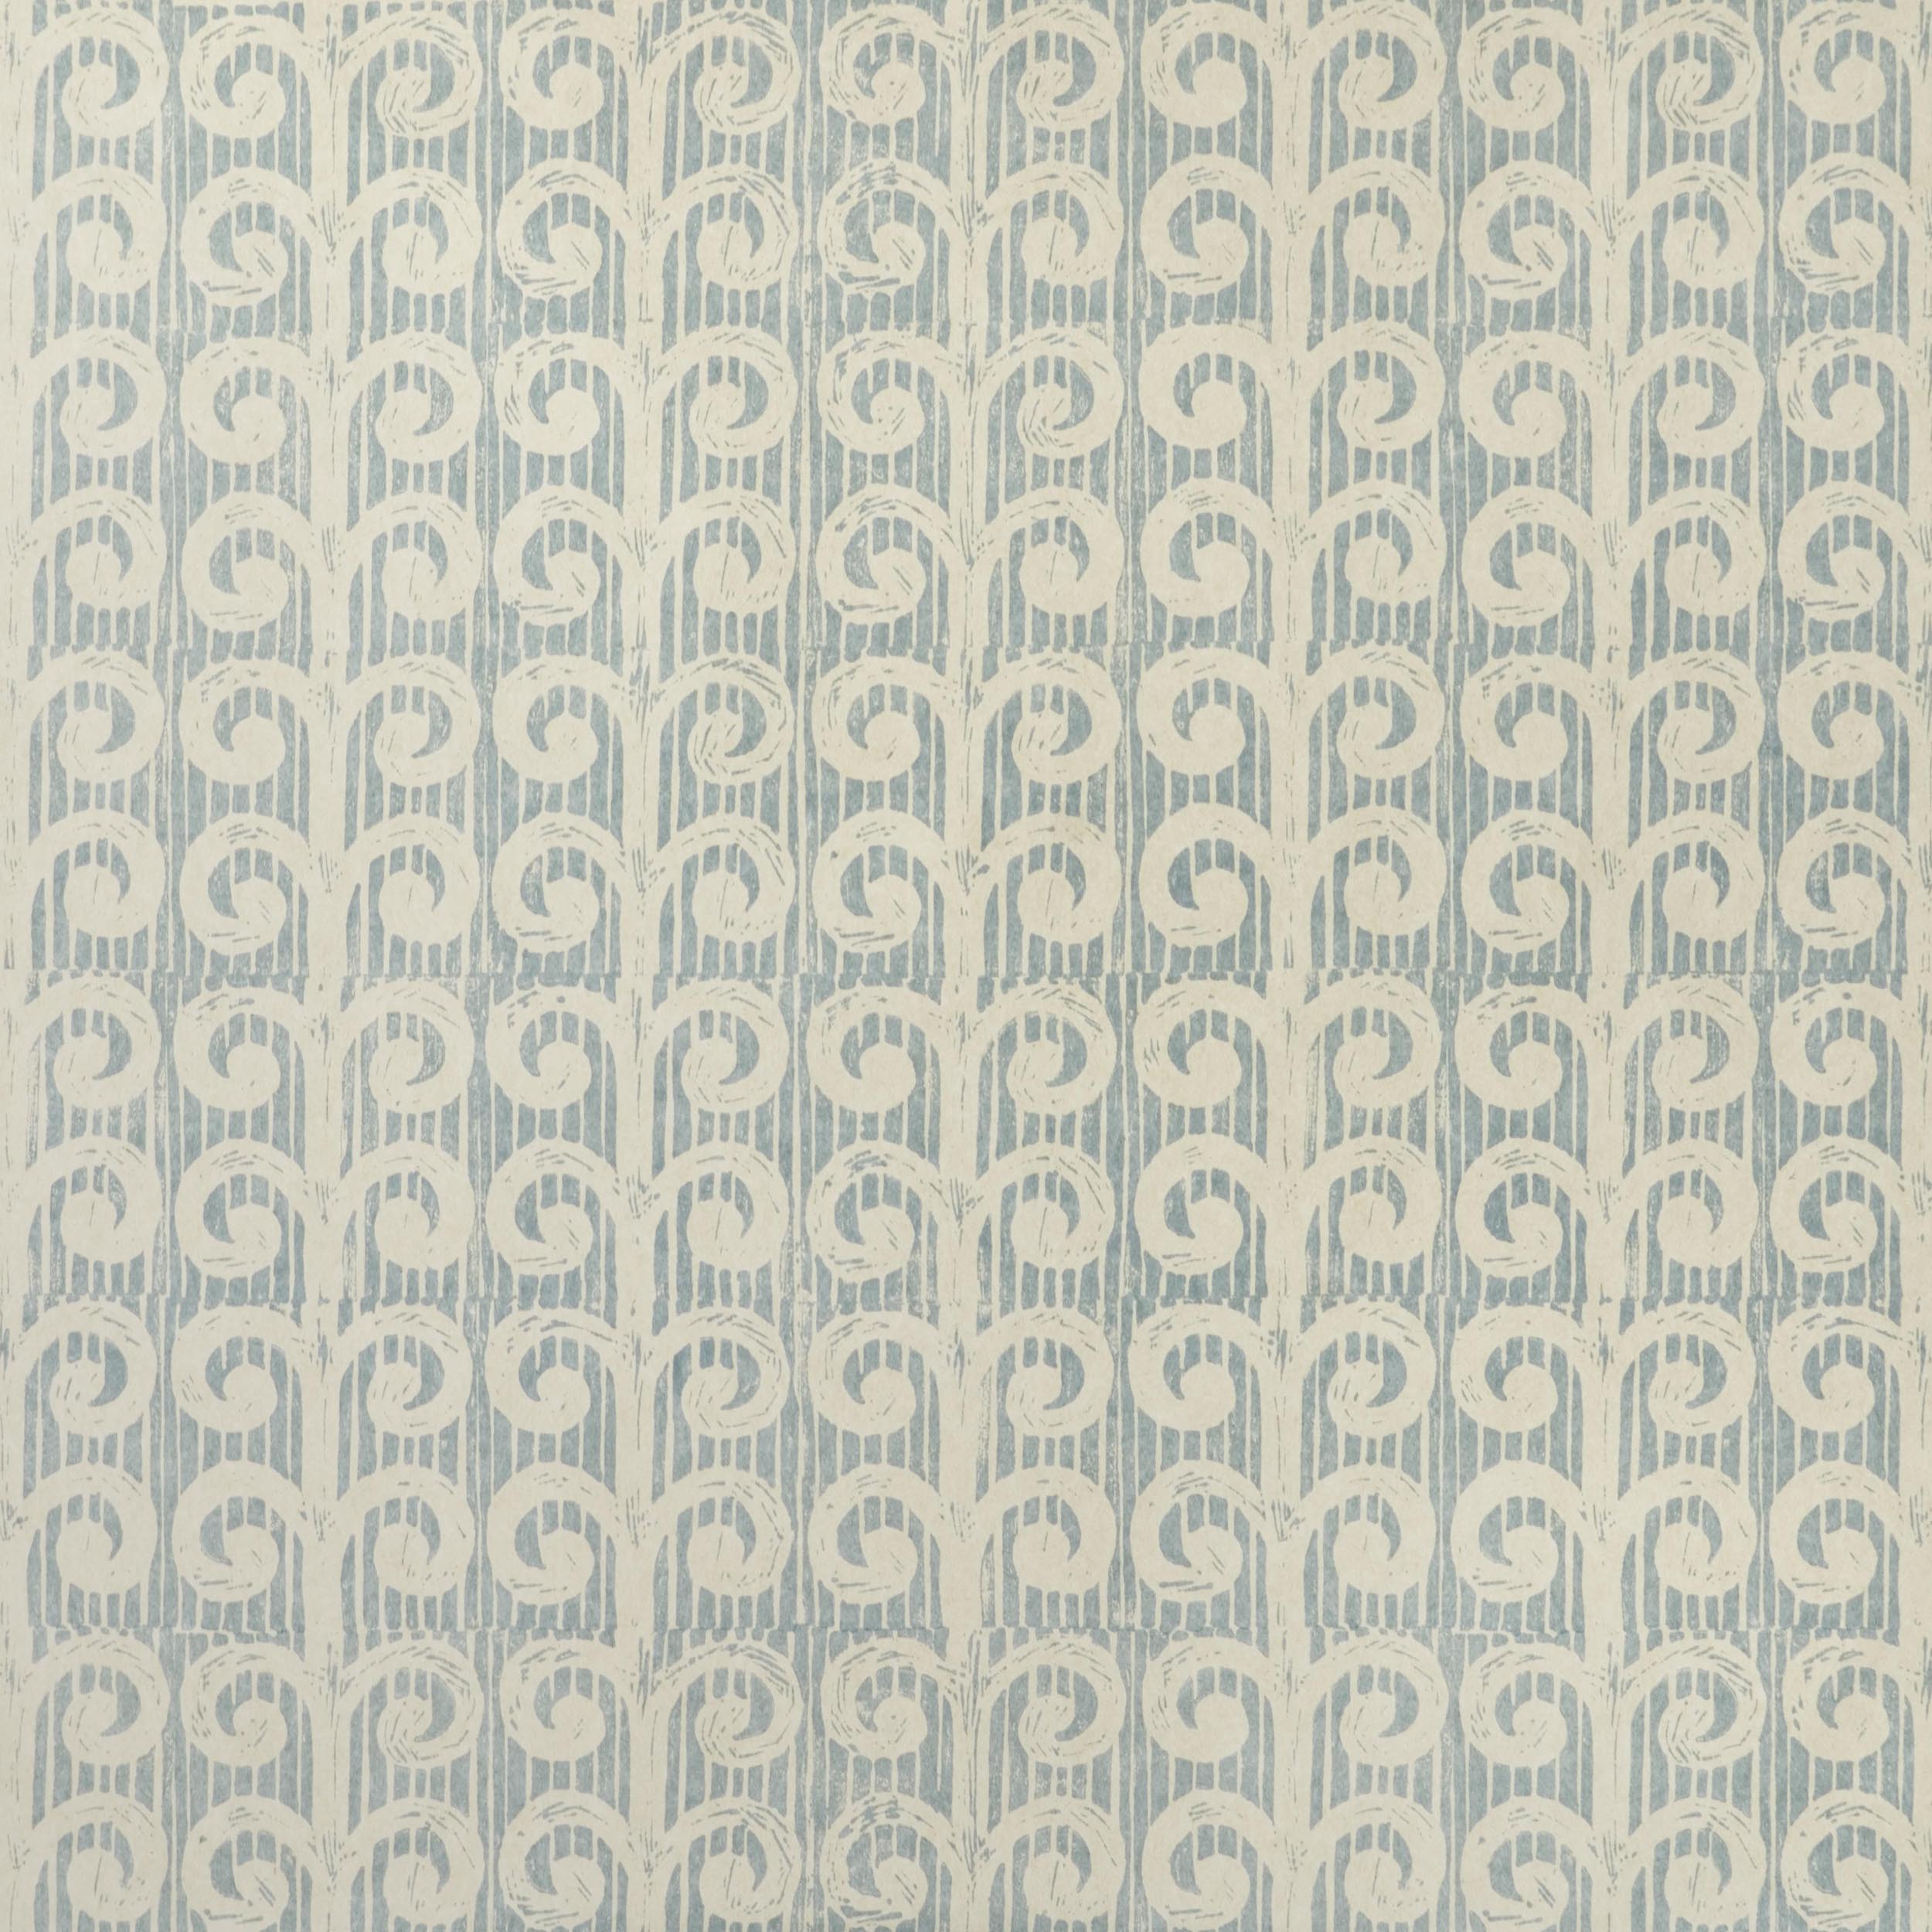 <p><strong>FERN</strong>blue 688-01<a href=/the-brooke-collection/blue-688-01>More →</a></p>